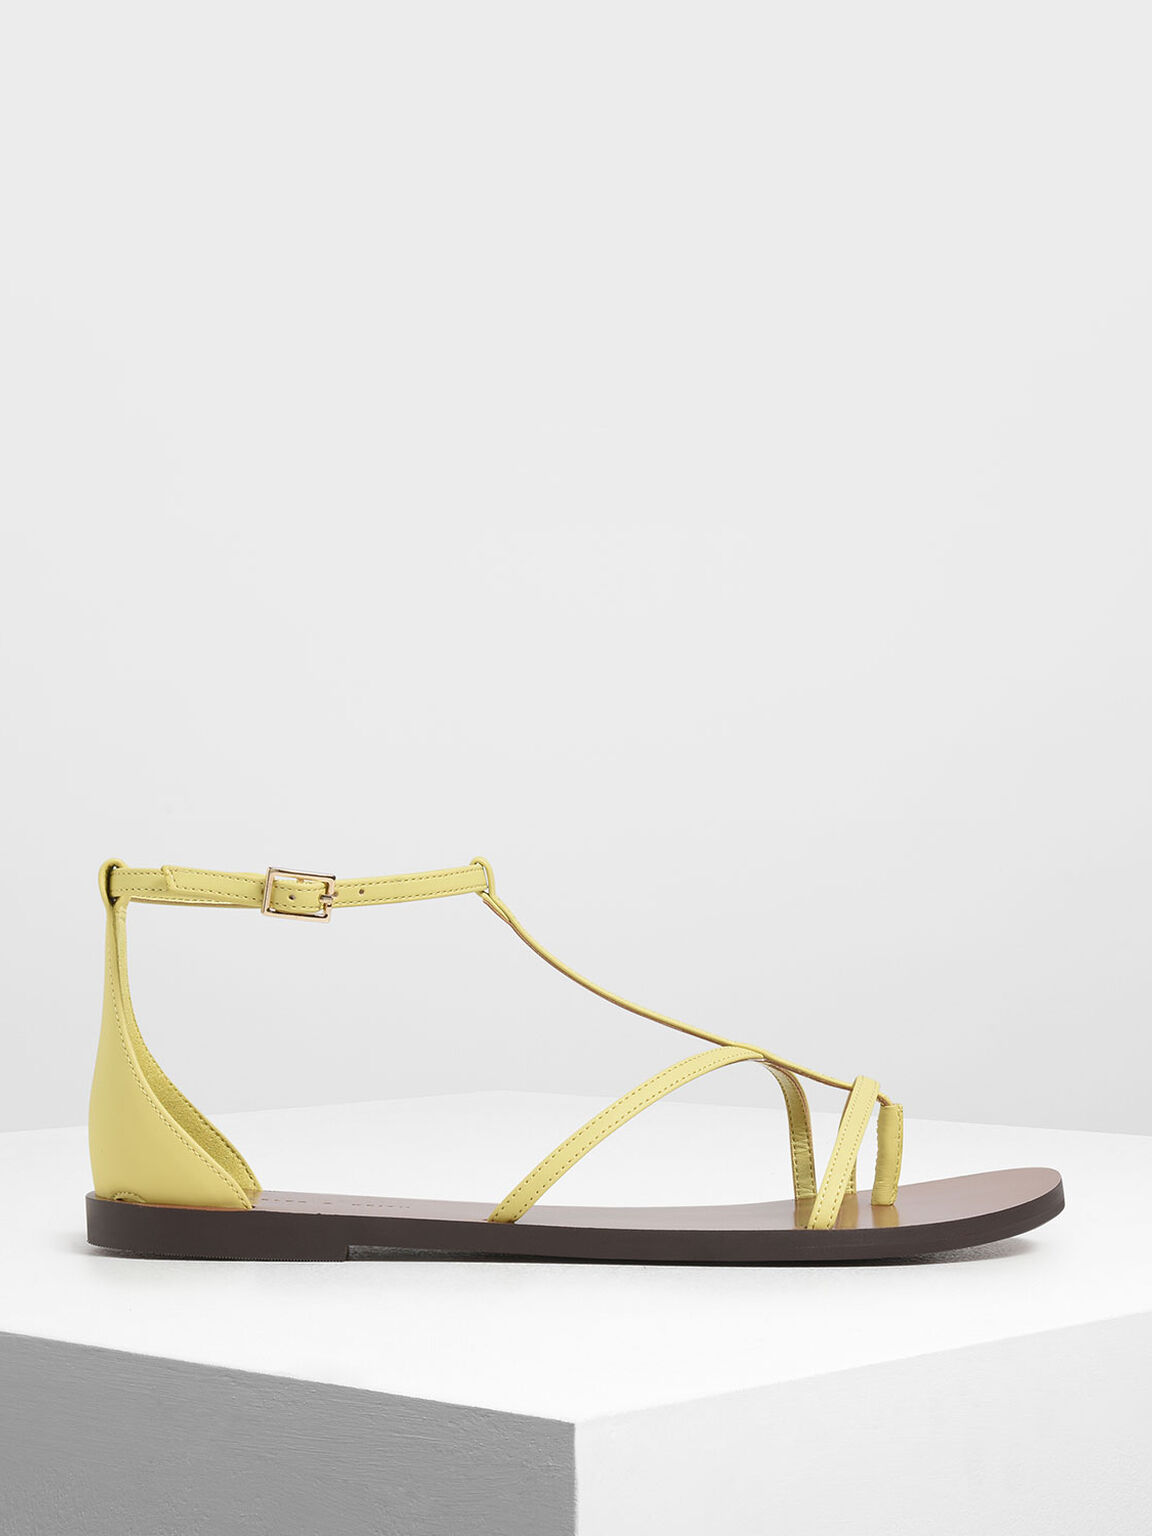 Asymmetrical Strappy Flats, Yellow, hi-res